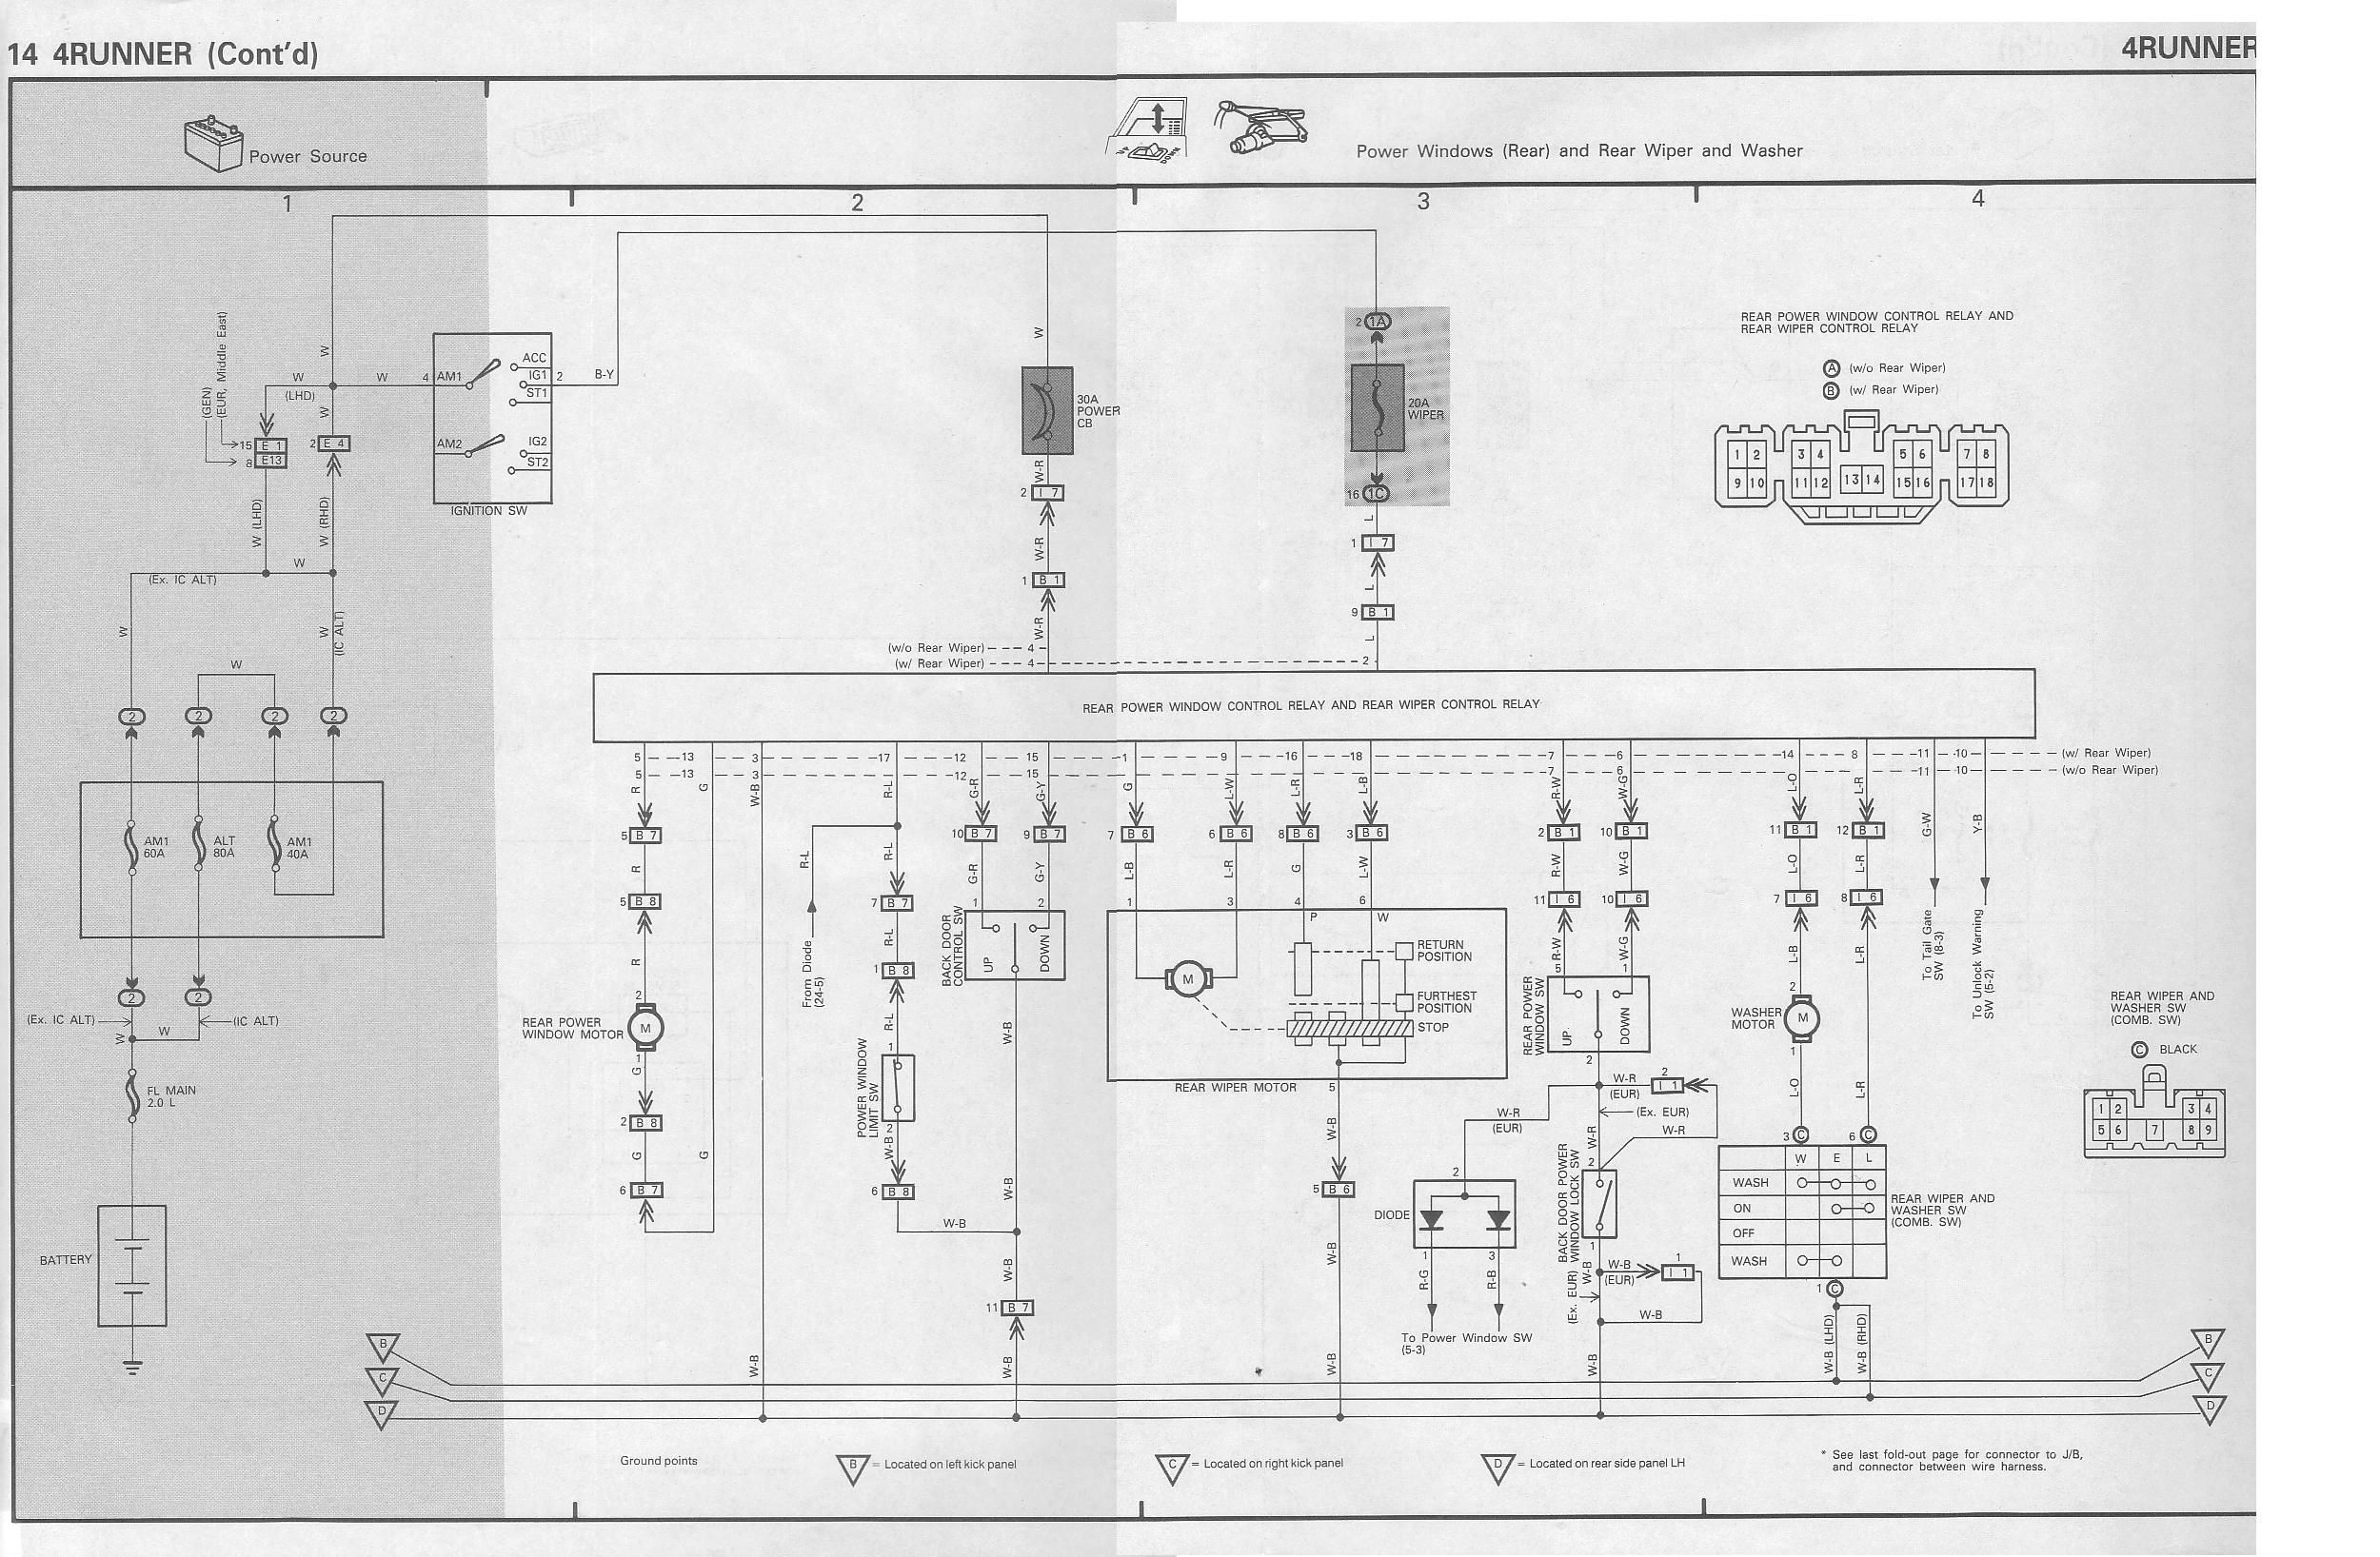 Remarkable Wiring Diagram Coolant Temp Engine Hilux Wiring Diagram Hilux Wiring Wiring Cloud Hemtshollocom